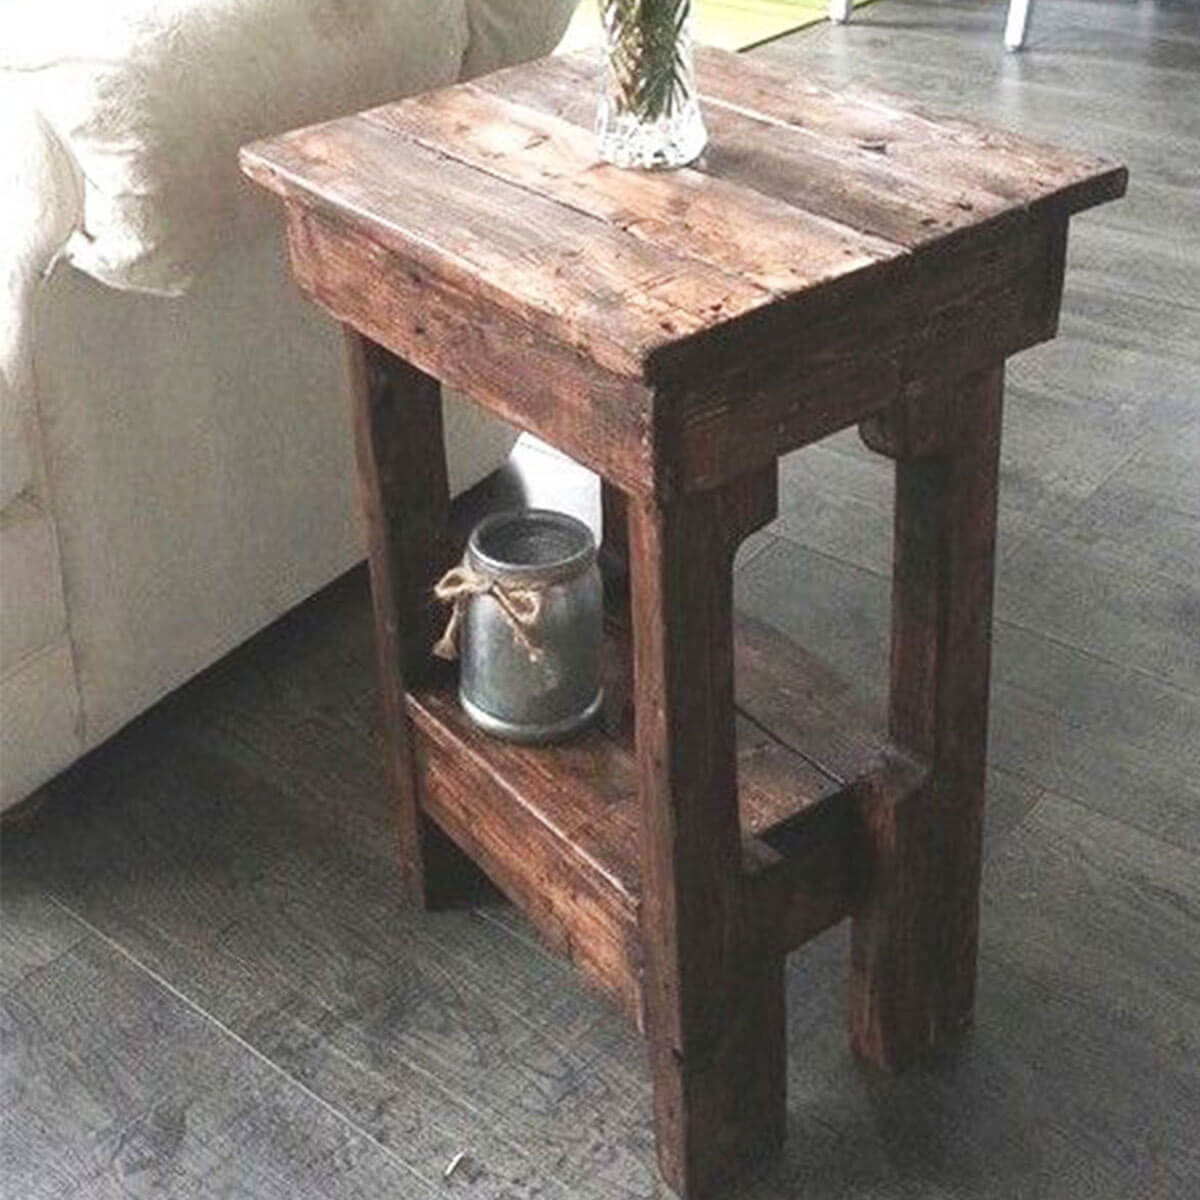 incredible diy end tables simple table ideas the family pallet blueprints outside furniture black marble coffee set target glass side hooker clearance ashley wood bedroom rustic